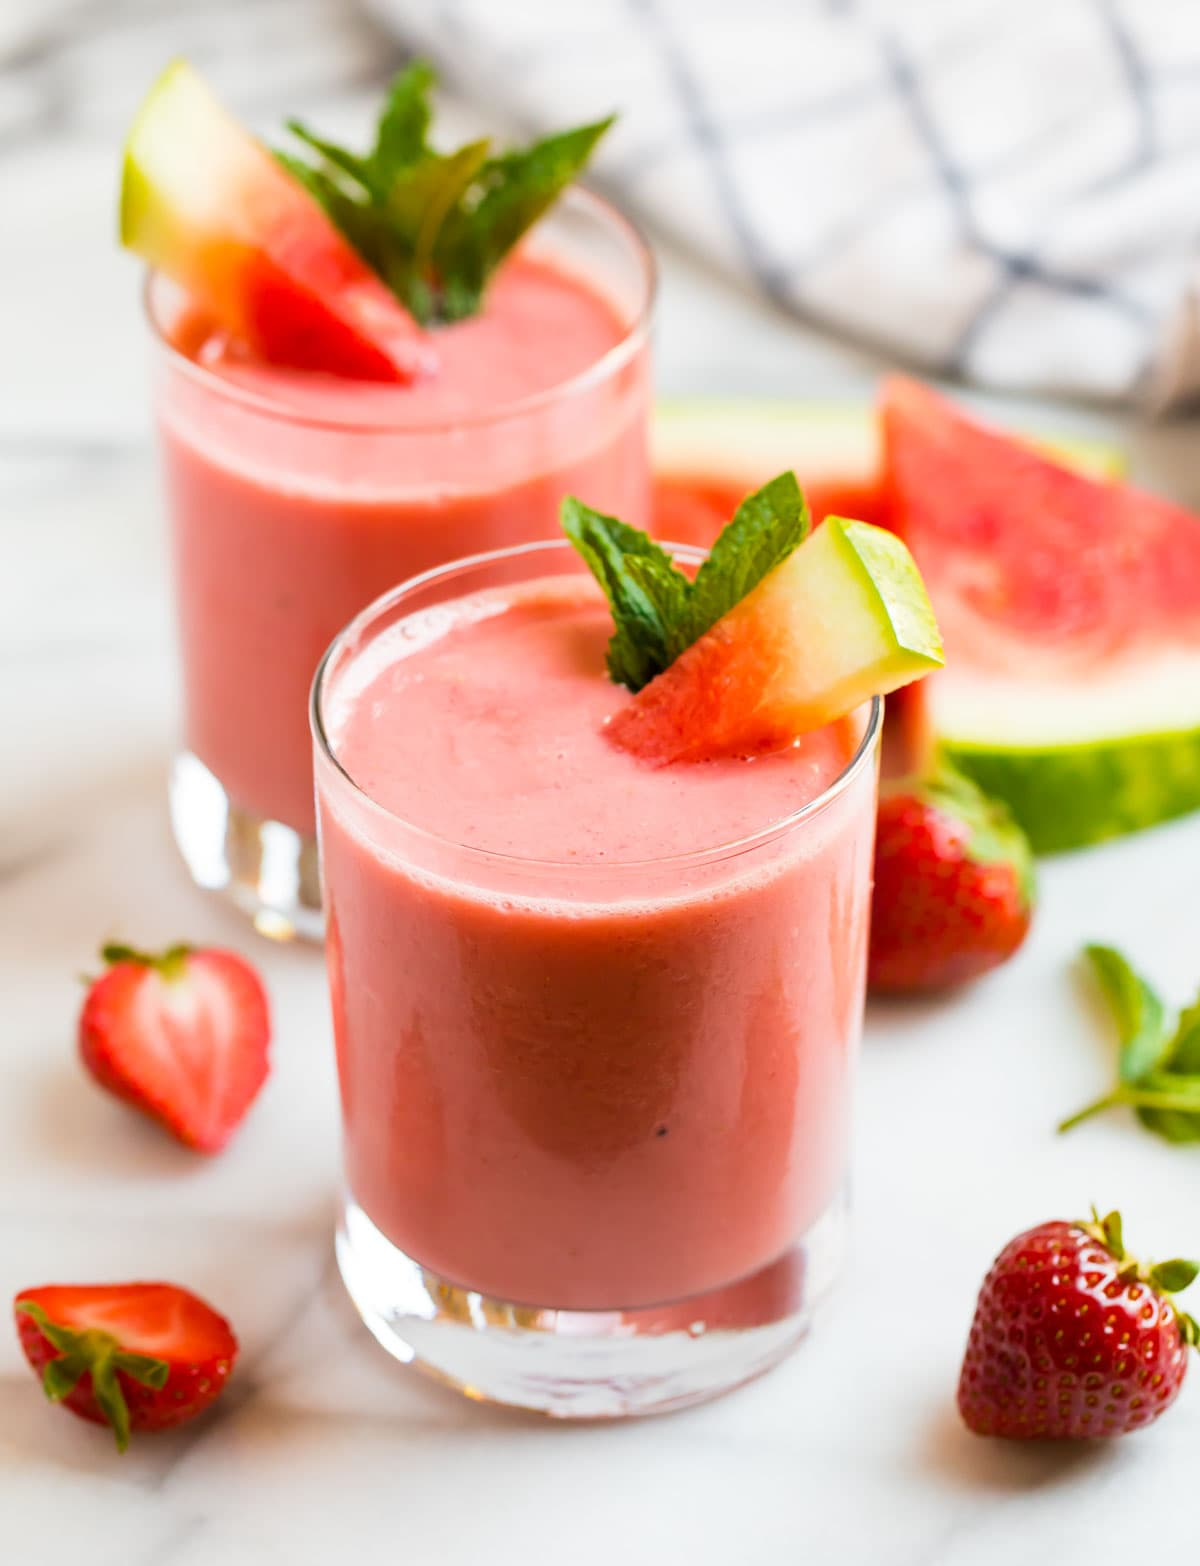 Two watermelon smoothies with strawberry